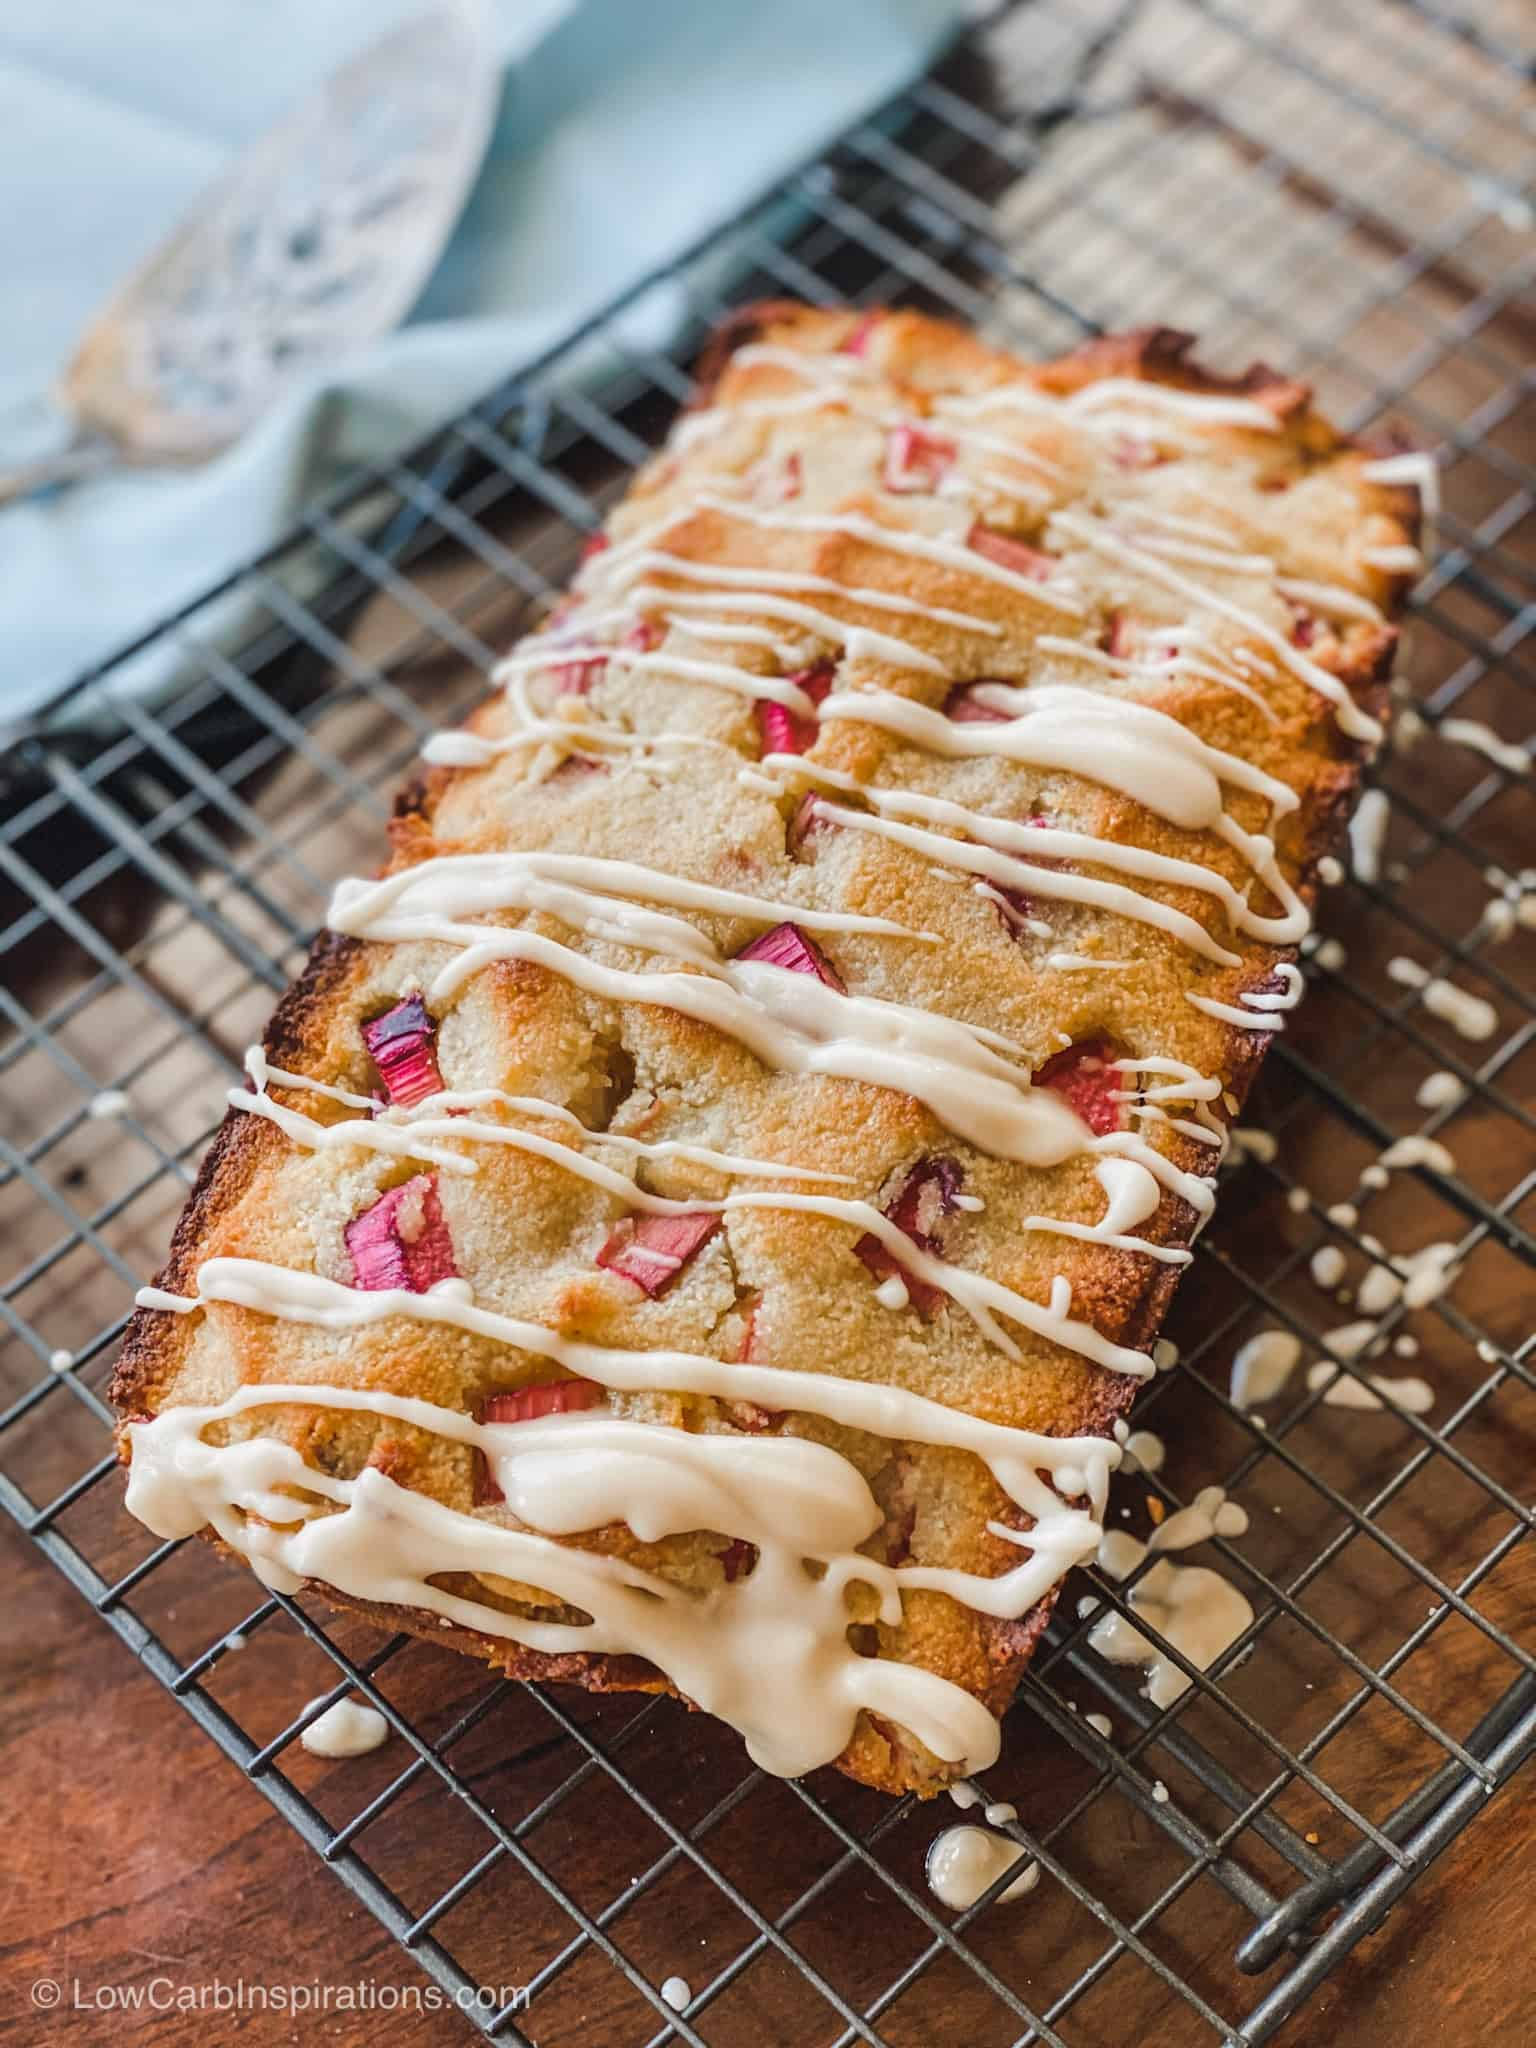 Keto Rhubarb Bread Recipe with a Glaze Topping